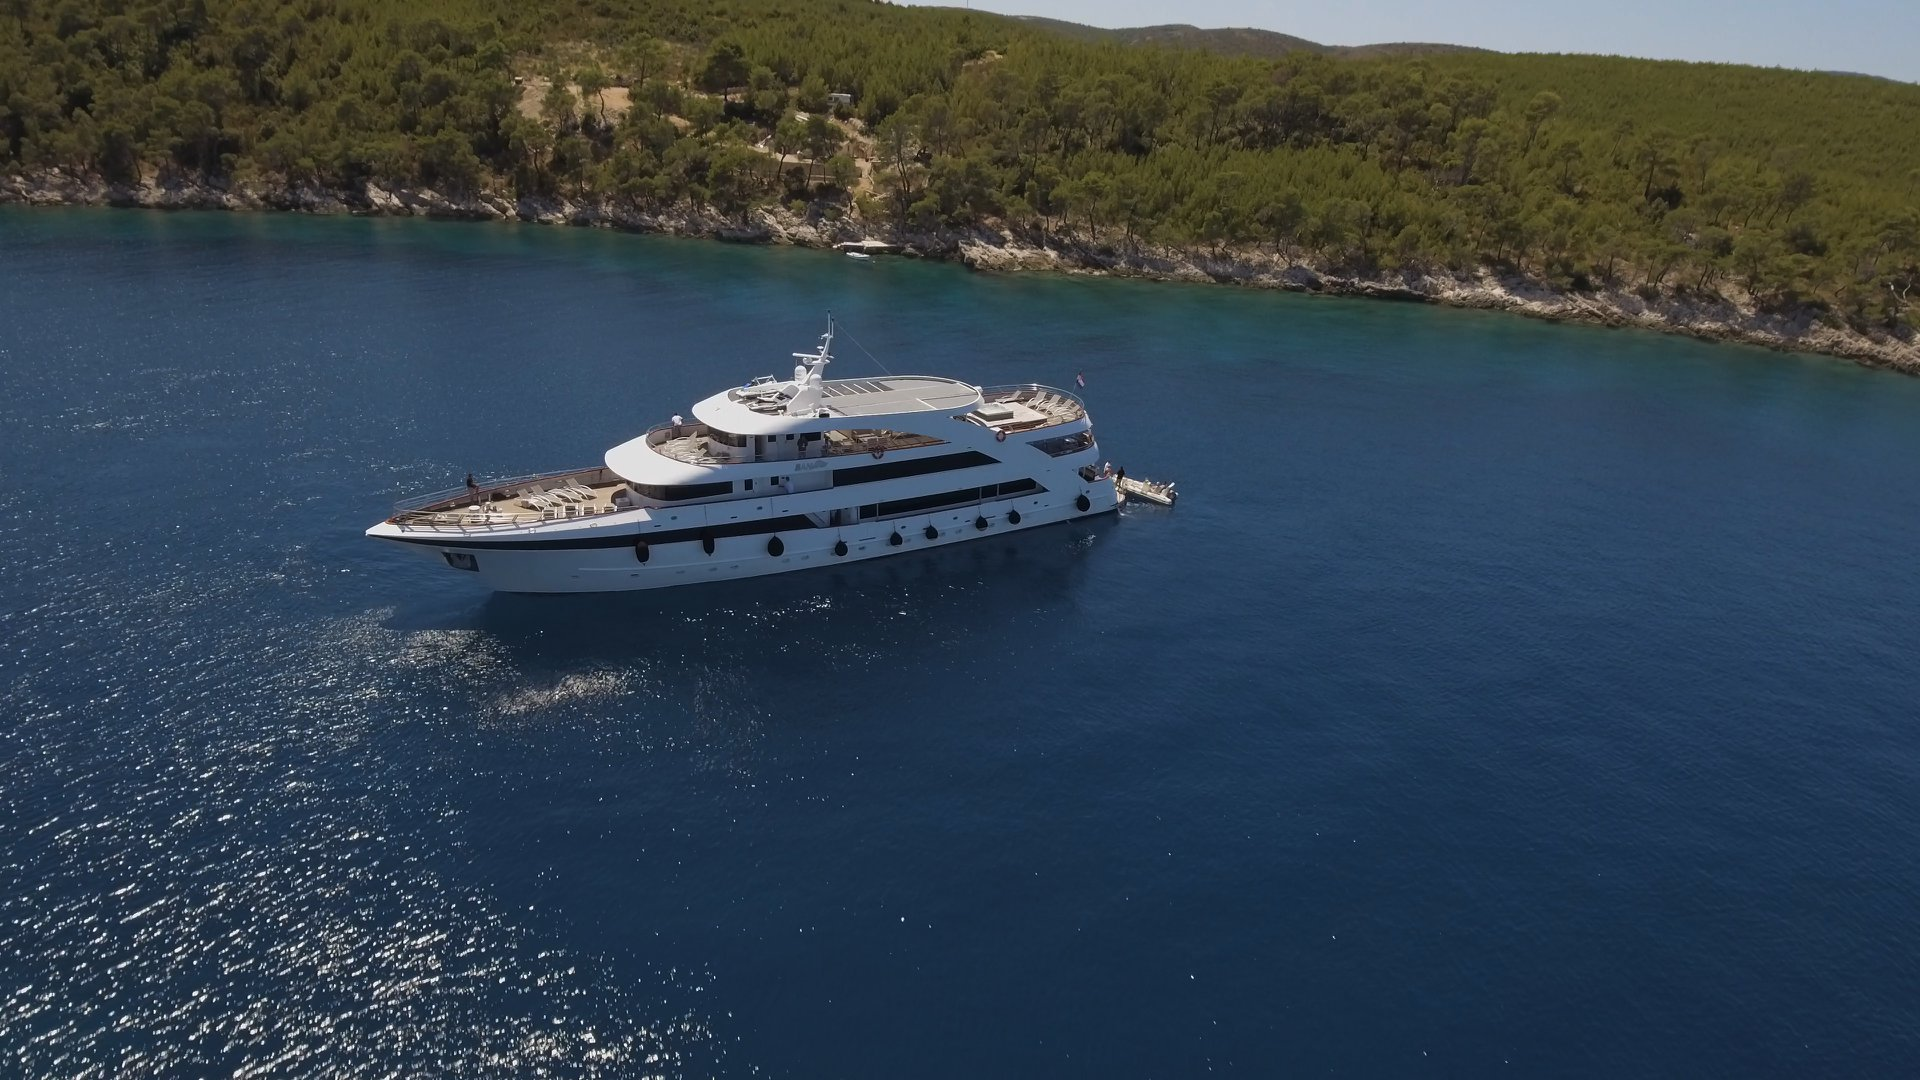 Adriatic Discovery Cruise from Dubrovnik to Split on Ban 3